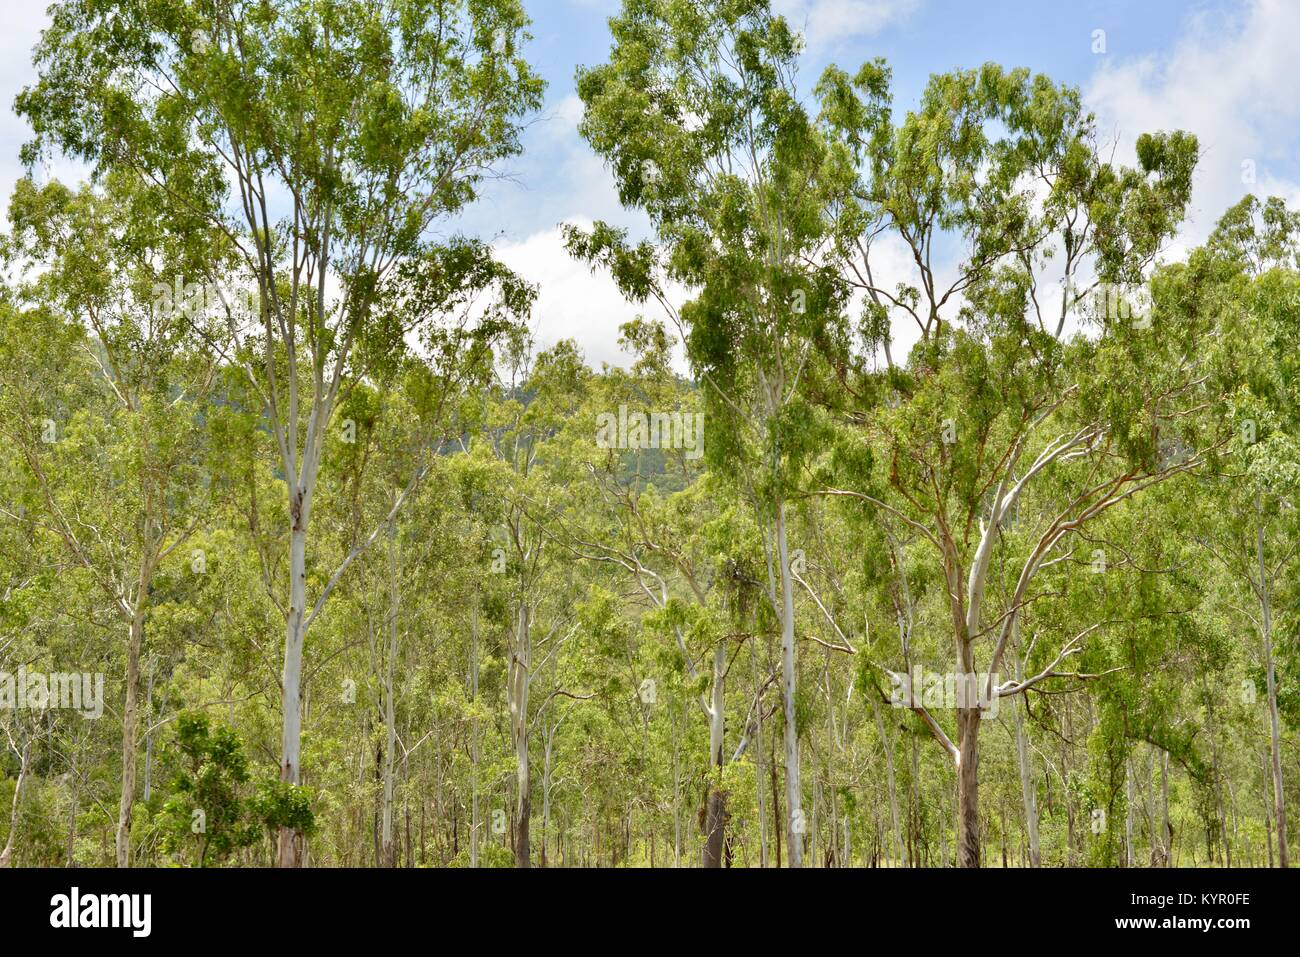 Dry tropics dry sclerophyll eucalypt forests, between Bowen and  Townsville, Queensland, Australia - Stock Image